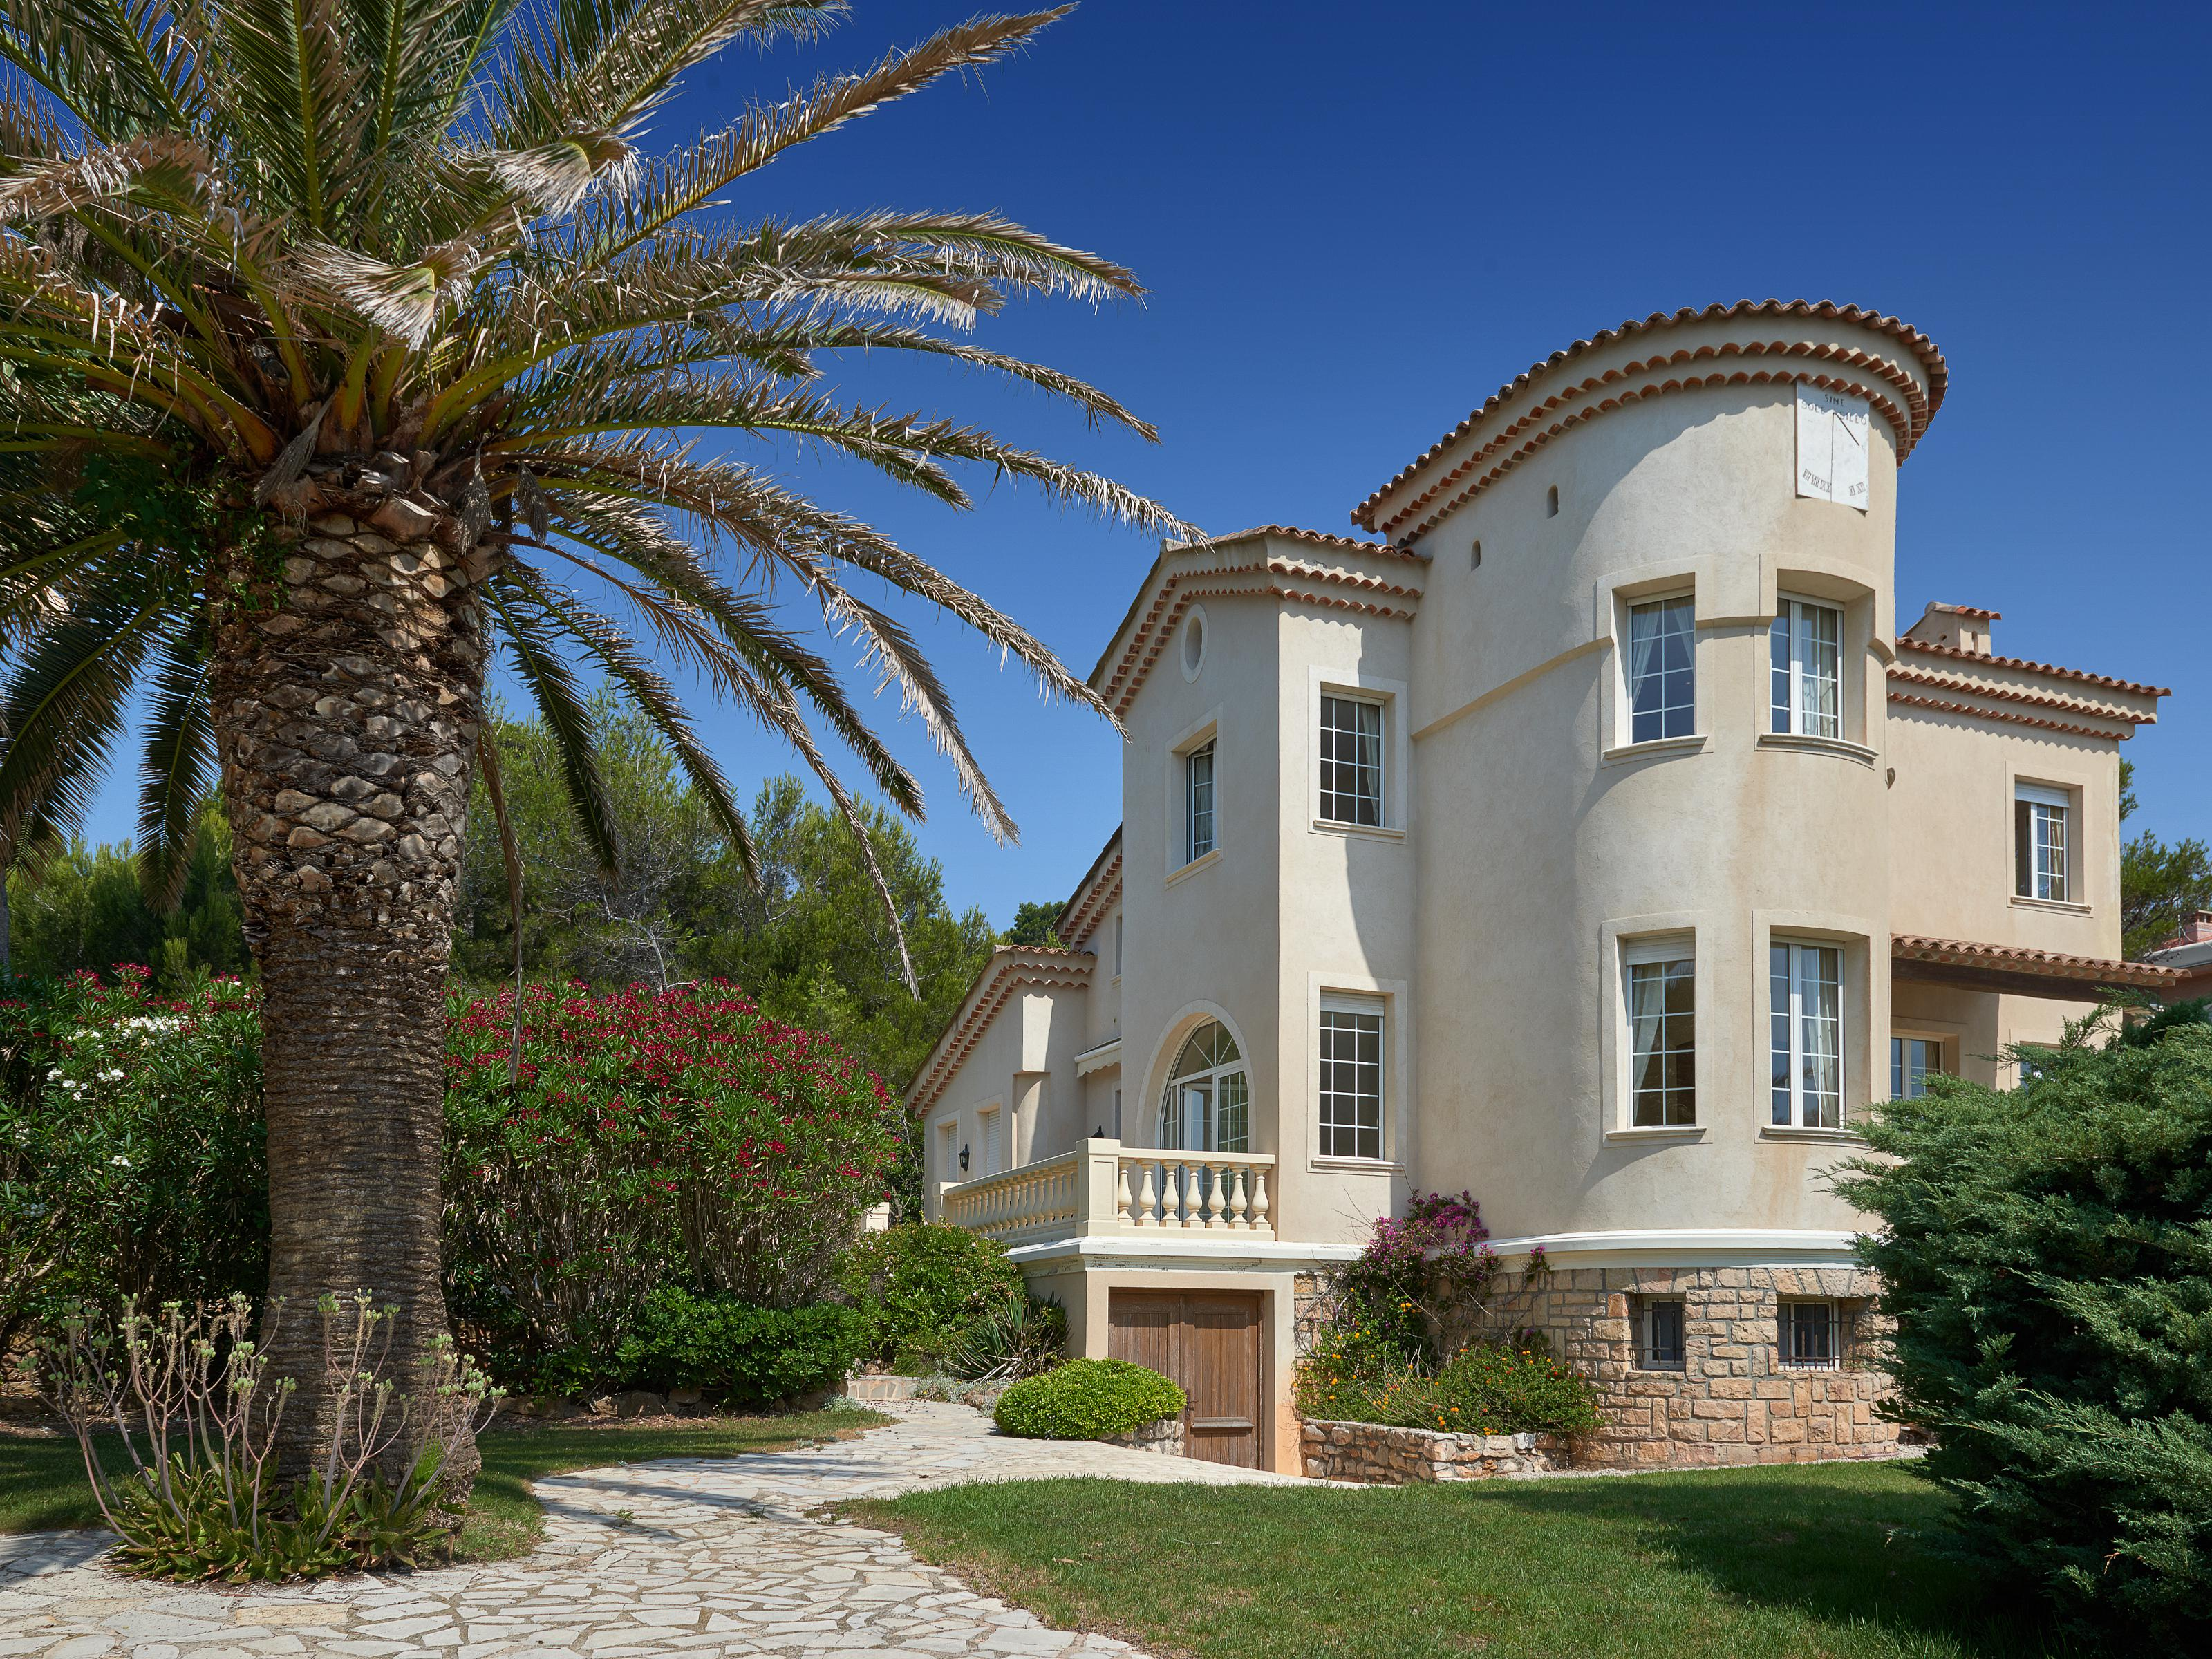 Single Family Home for Sale at Waterfront villa in Cap D'Antibes Cap D'Antibes, Provence-Alpes-Cote D'Azur 06160 France